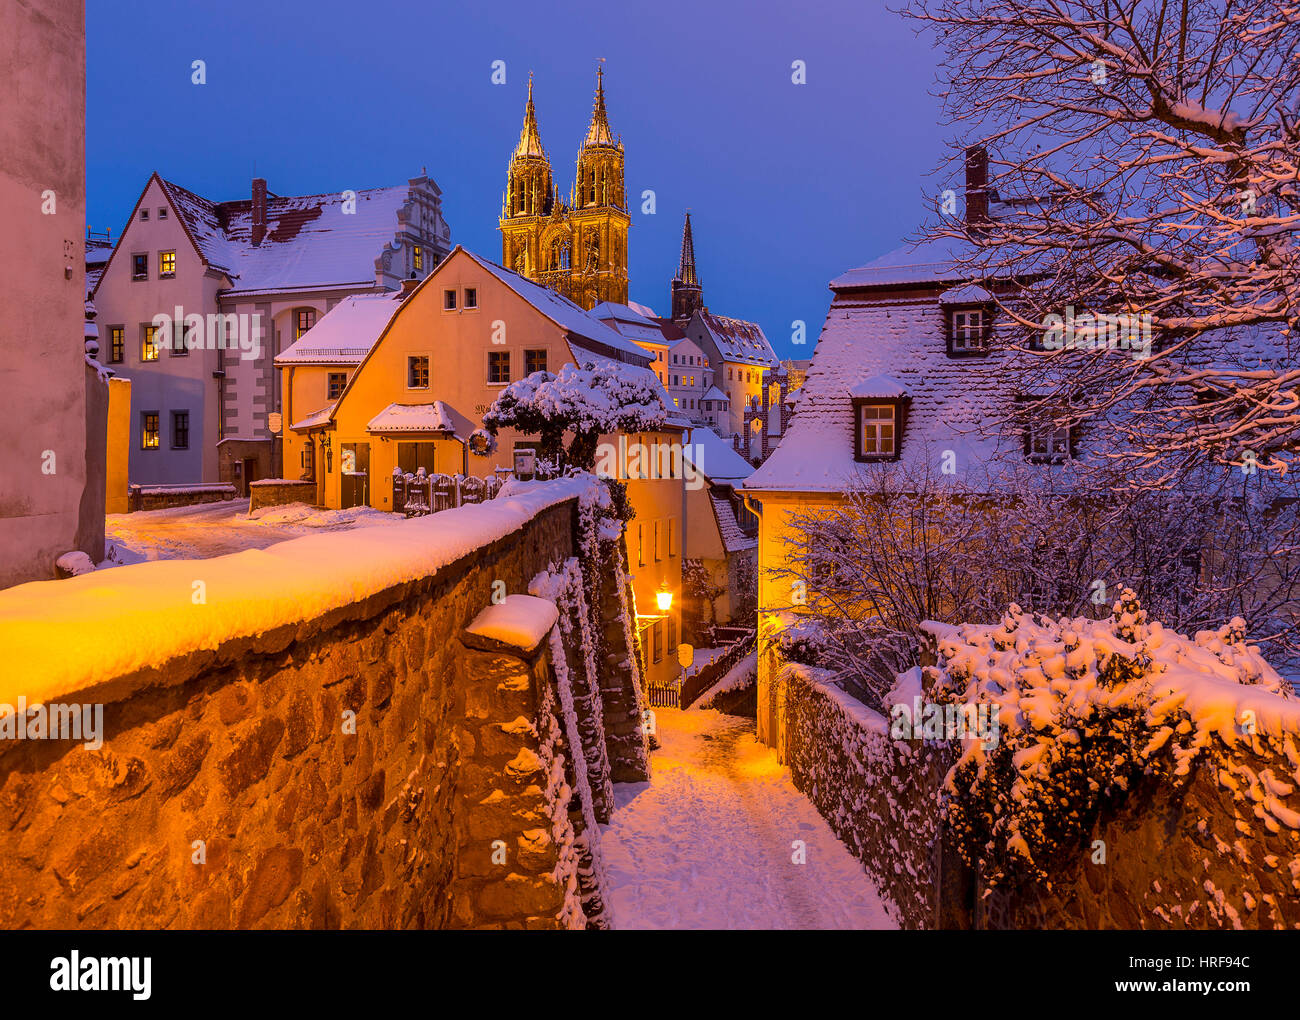 Historic centre in winter, view the cathedral with stairs Rote Stufen, evening mood, Meissen, Saxony, Germany - Stock Image